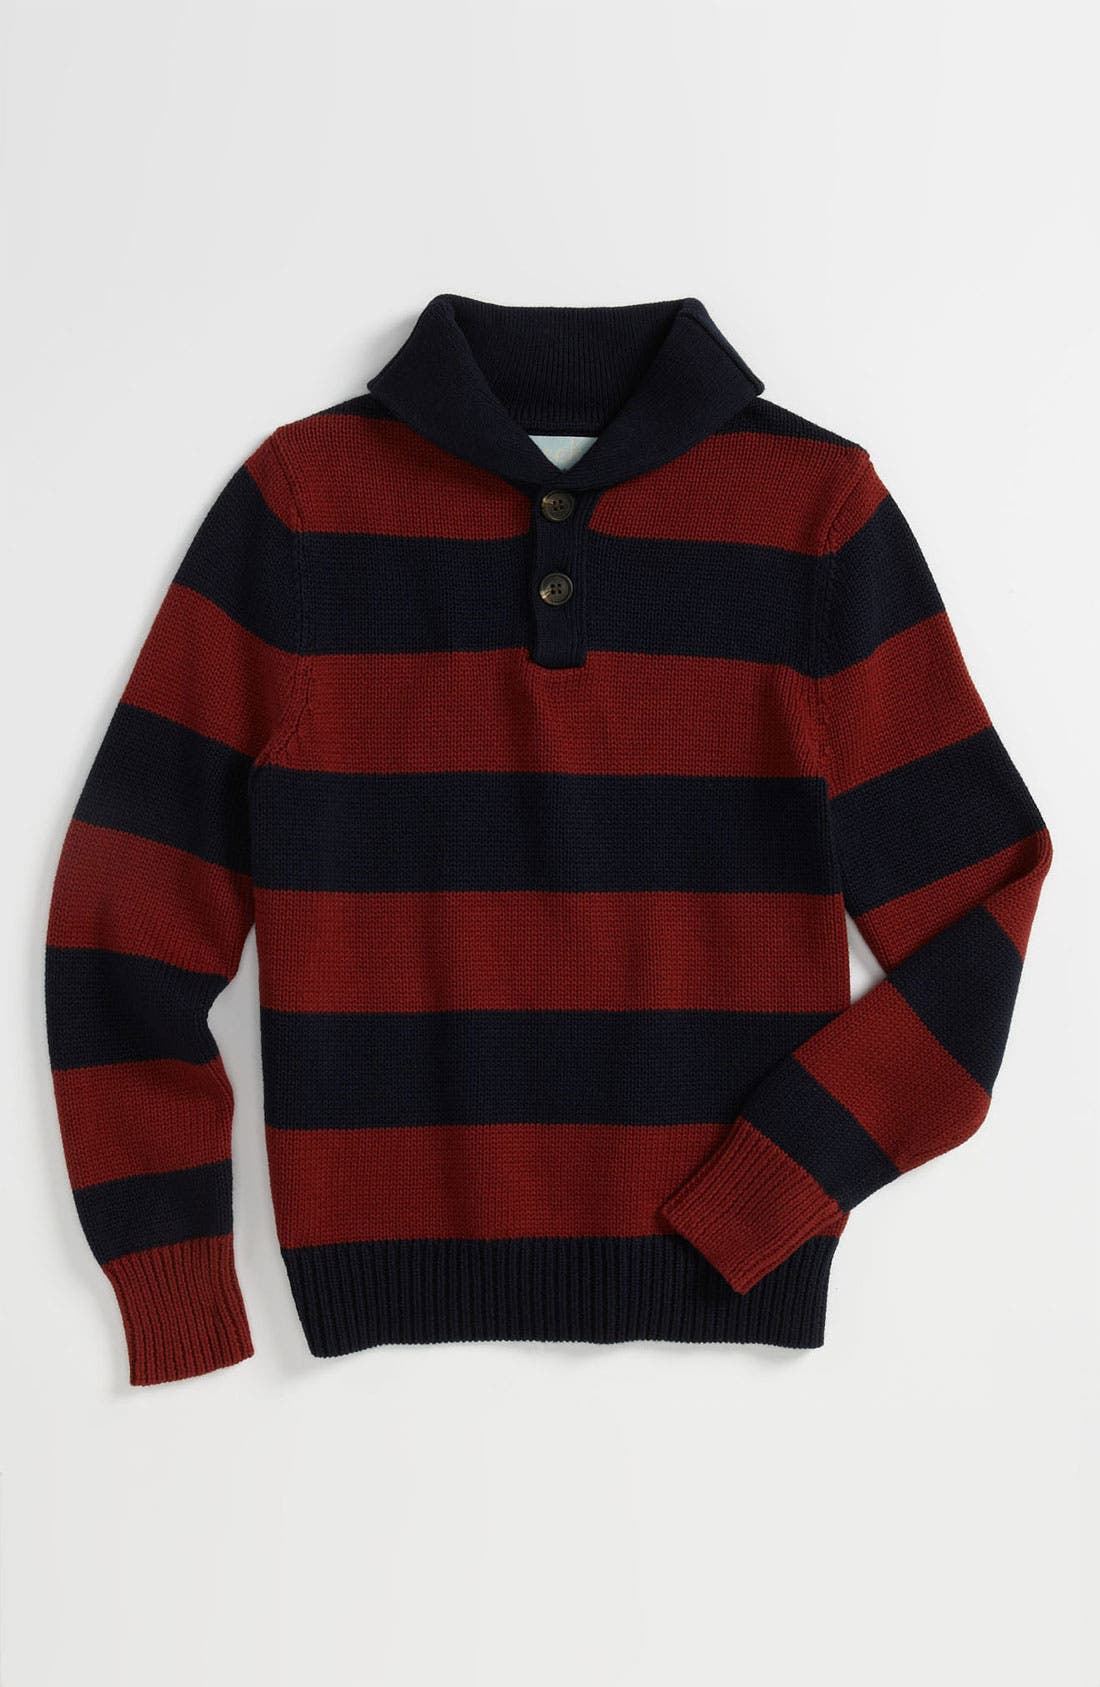 Alternate Image 1 Selected - Peek 'Cooper' Stripe Sweater (Toddler, Little Boys & Big Boys)